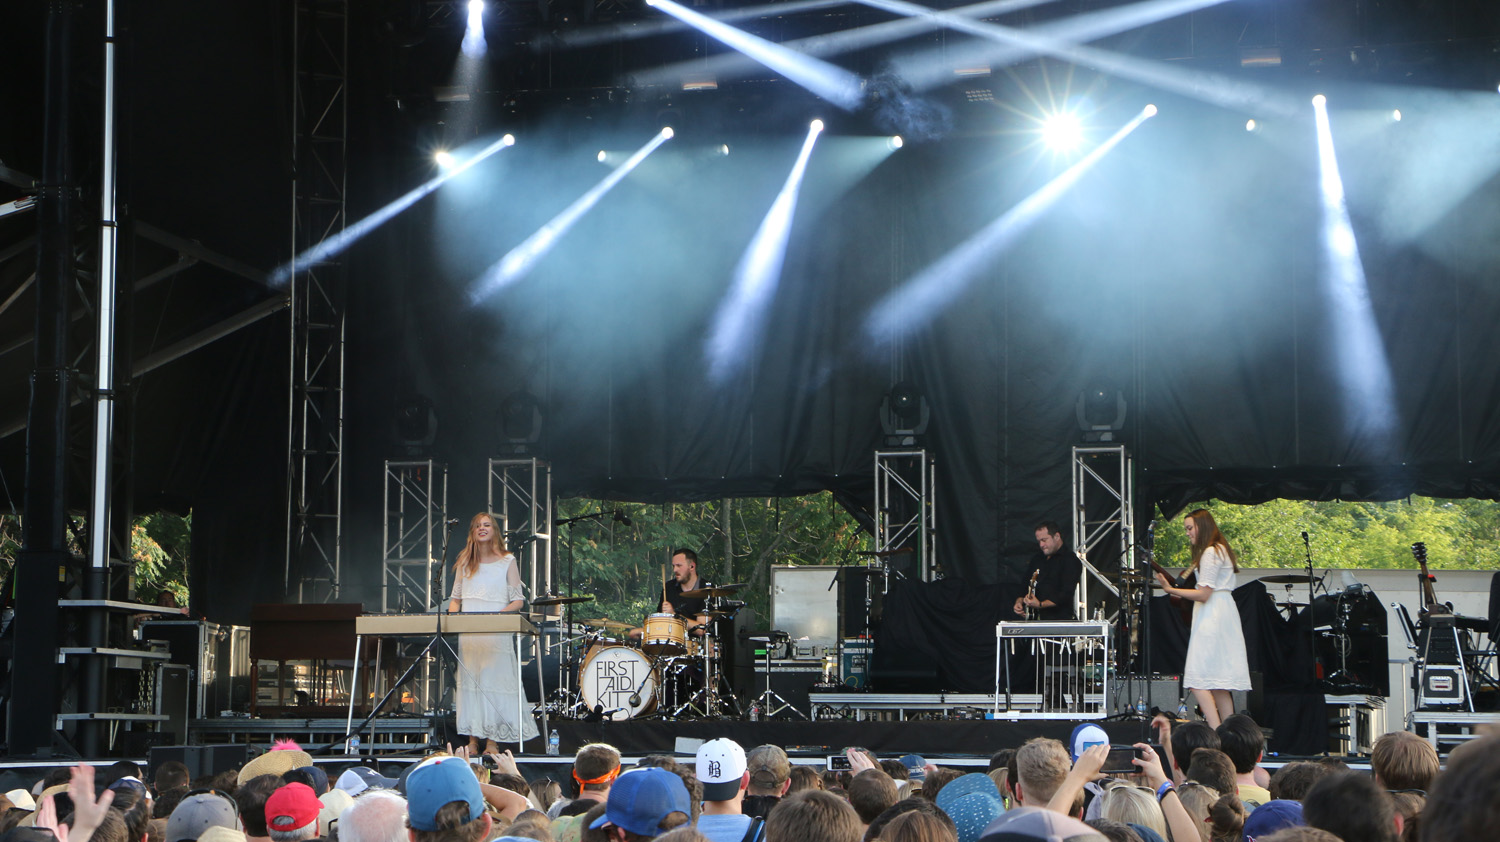 First Aid Kit performs at the Sloss Music & Arts Festival in Birmingham, Ala., on Saturday, July 18, 2015. (MTSU Sidelines / John Connor Coulston)